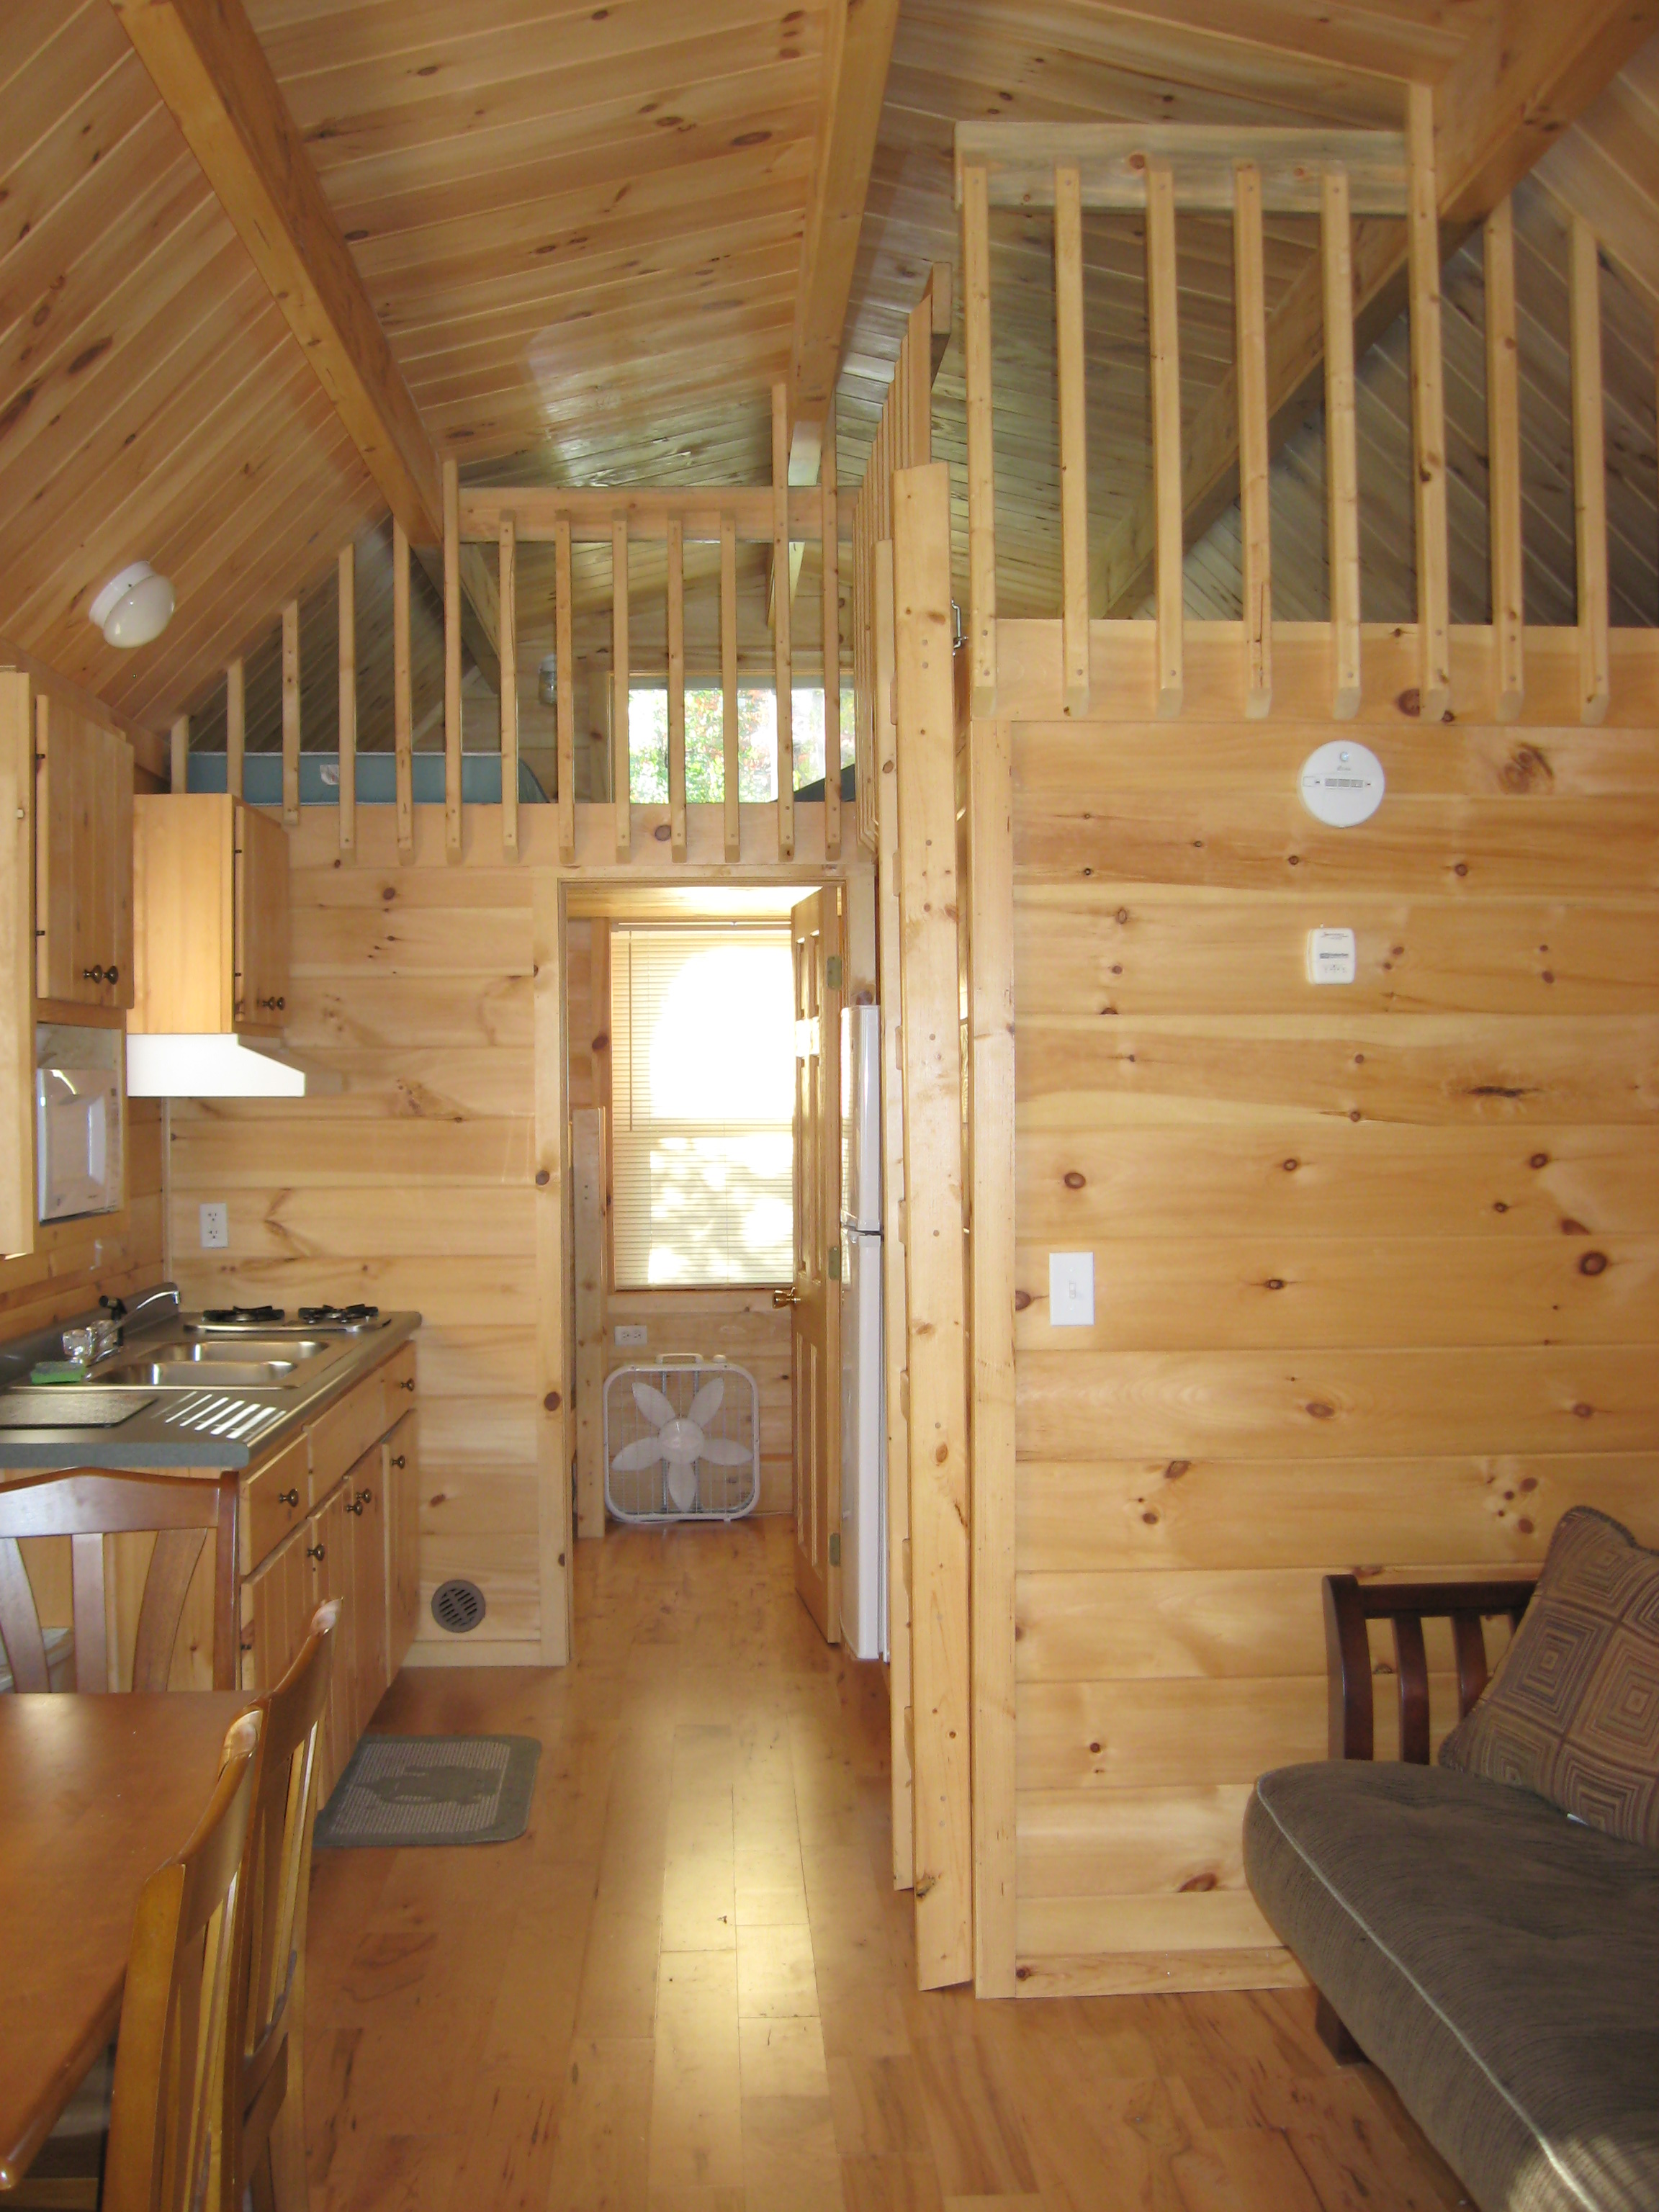 1-bedroom Cabin Interior